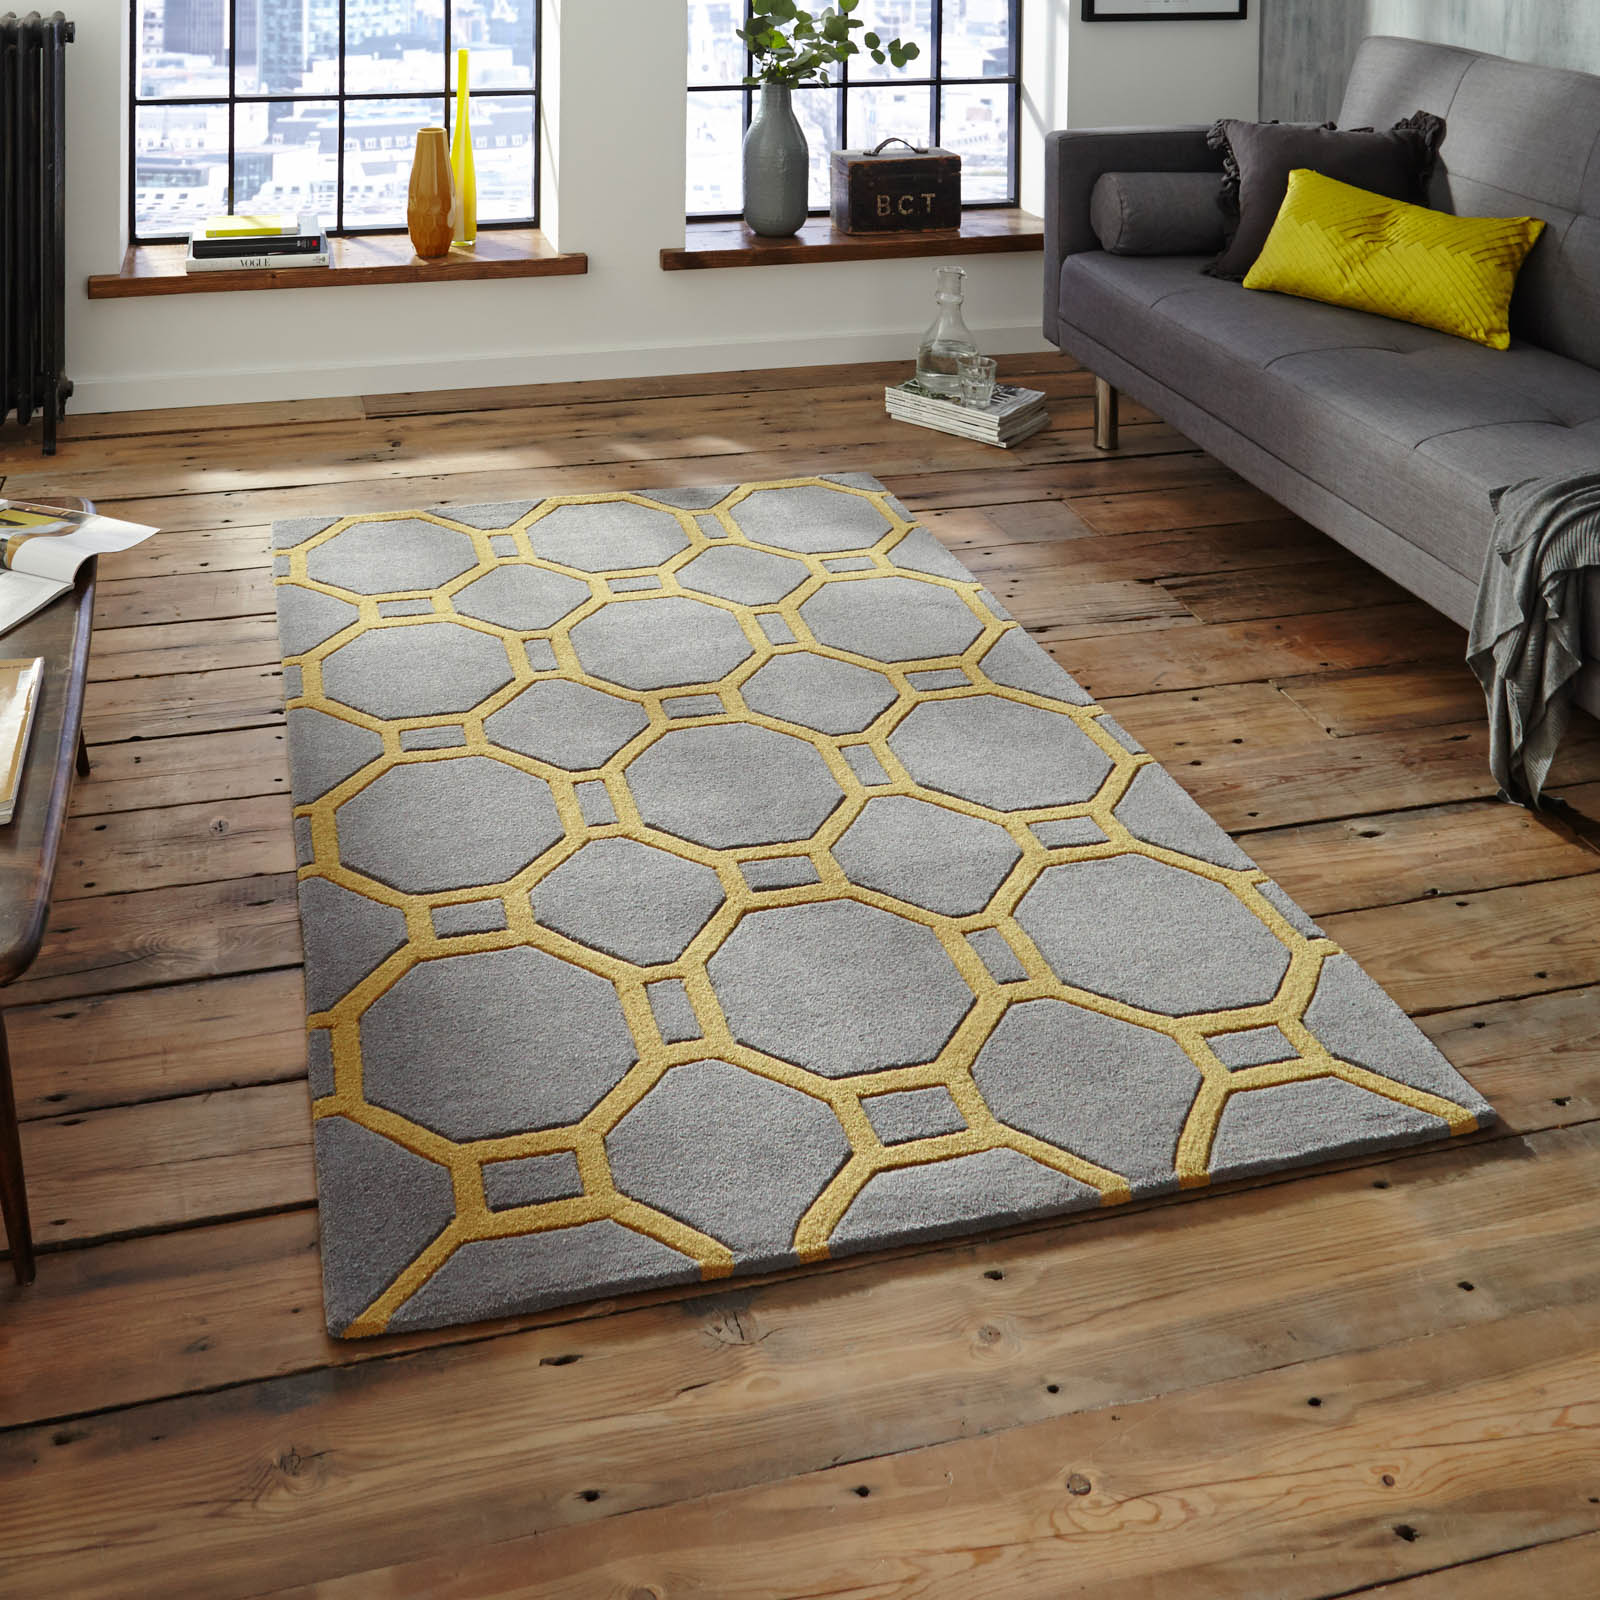 Hong Kong HK 4338 Rugs In Grey Yellow